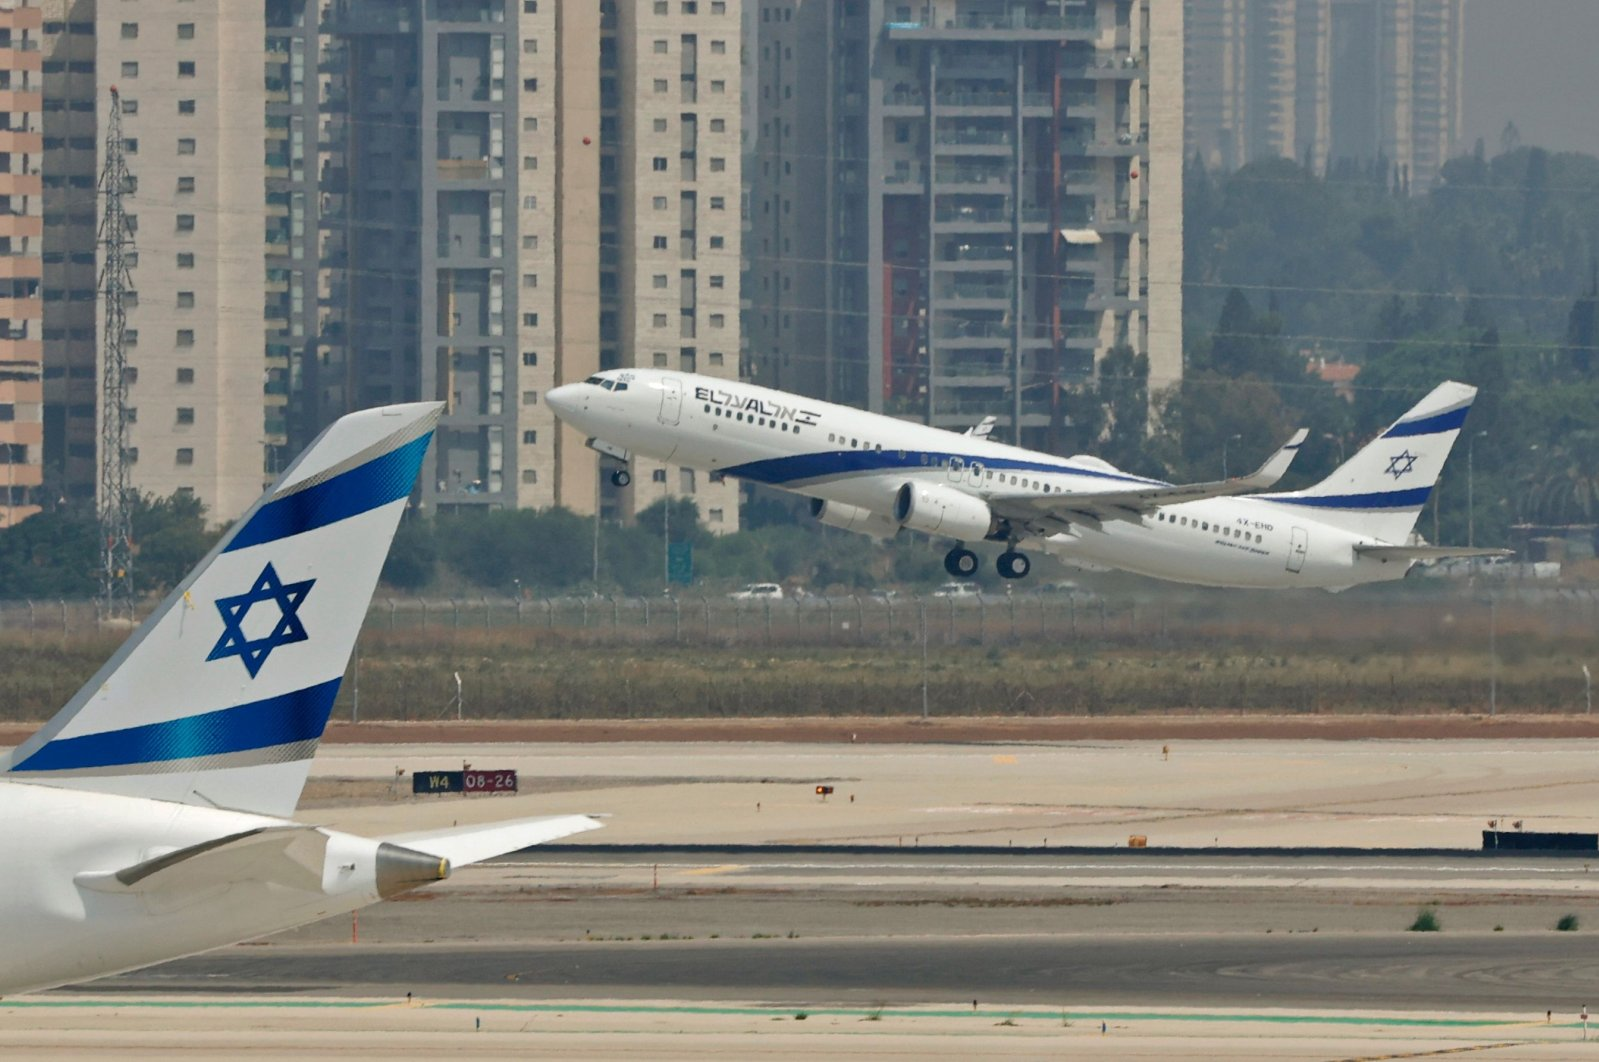 El Al's airliner, which is carrying a U.S.-Israeli delegation to the UAE following a normalization accord, takes off for the first-ever commercial flight from Israel to the UAE at the Ben Gurion Airport near Tel Aviv, Aug. 31, 2020. (AFP Photo)